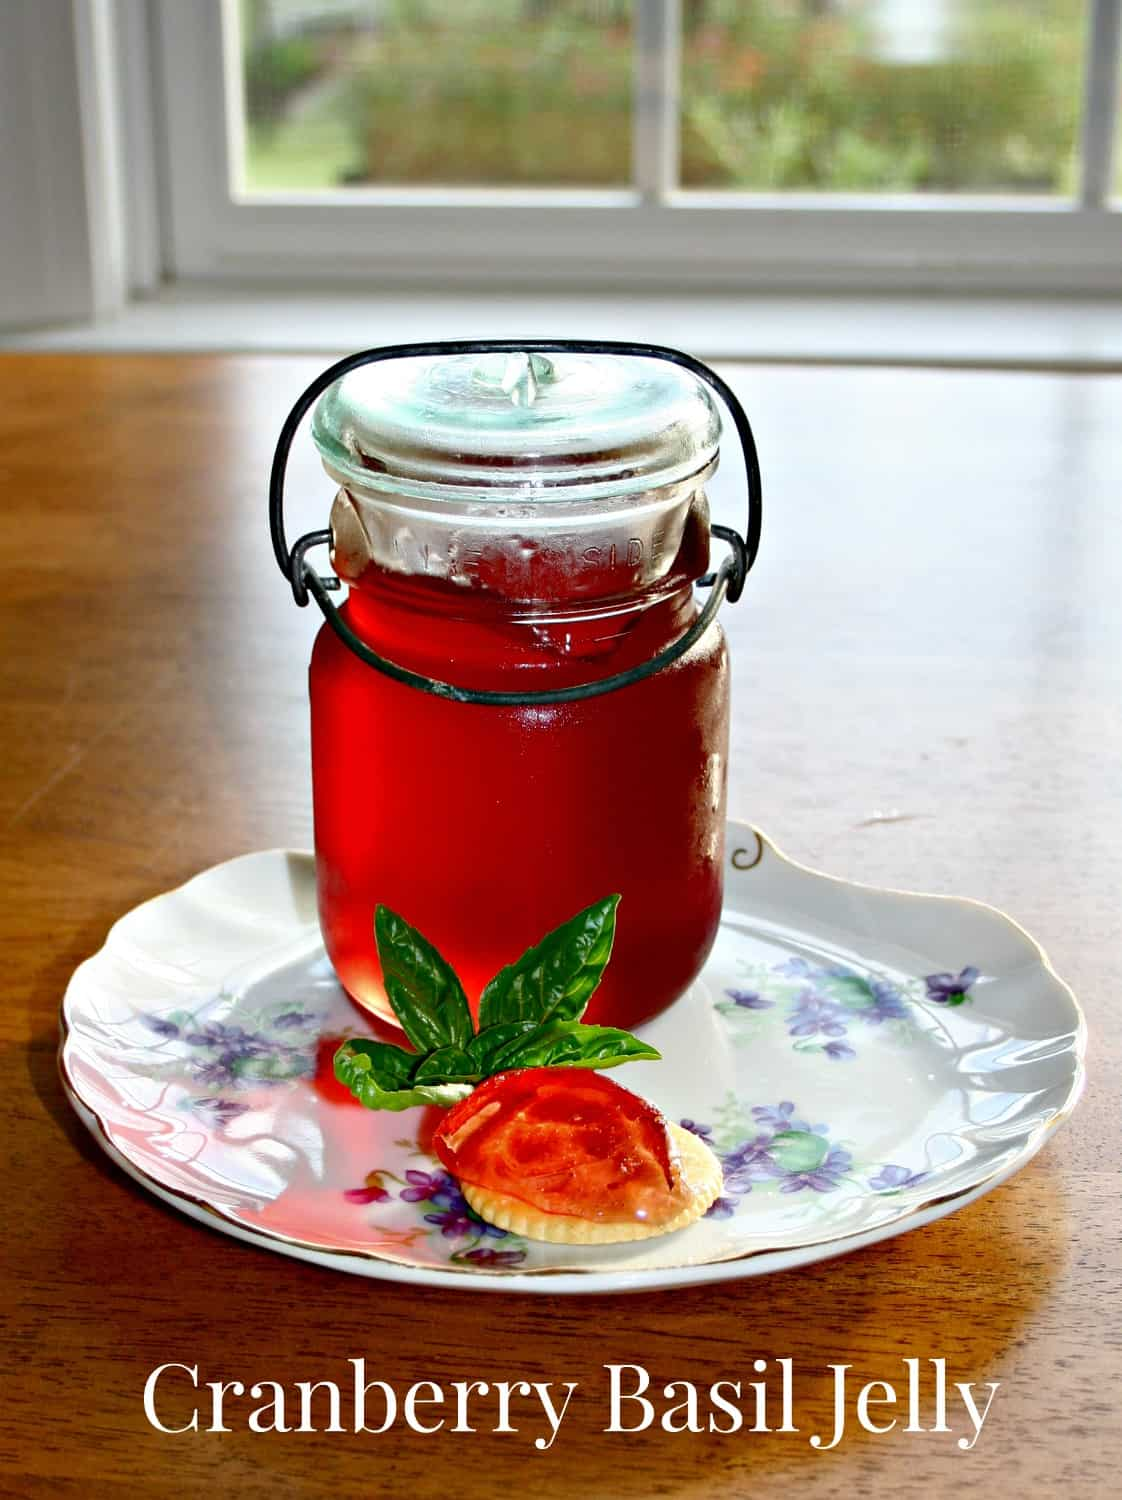 Cranberry Basil Jelly Recipe